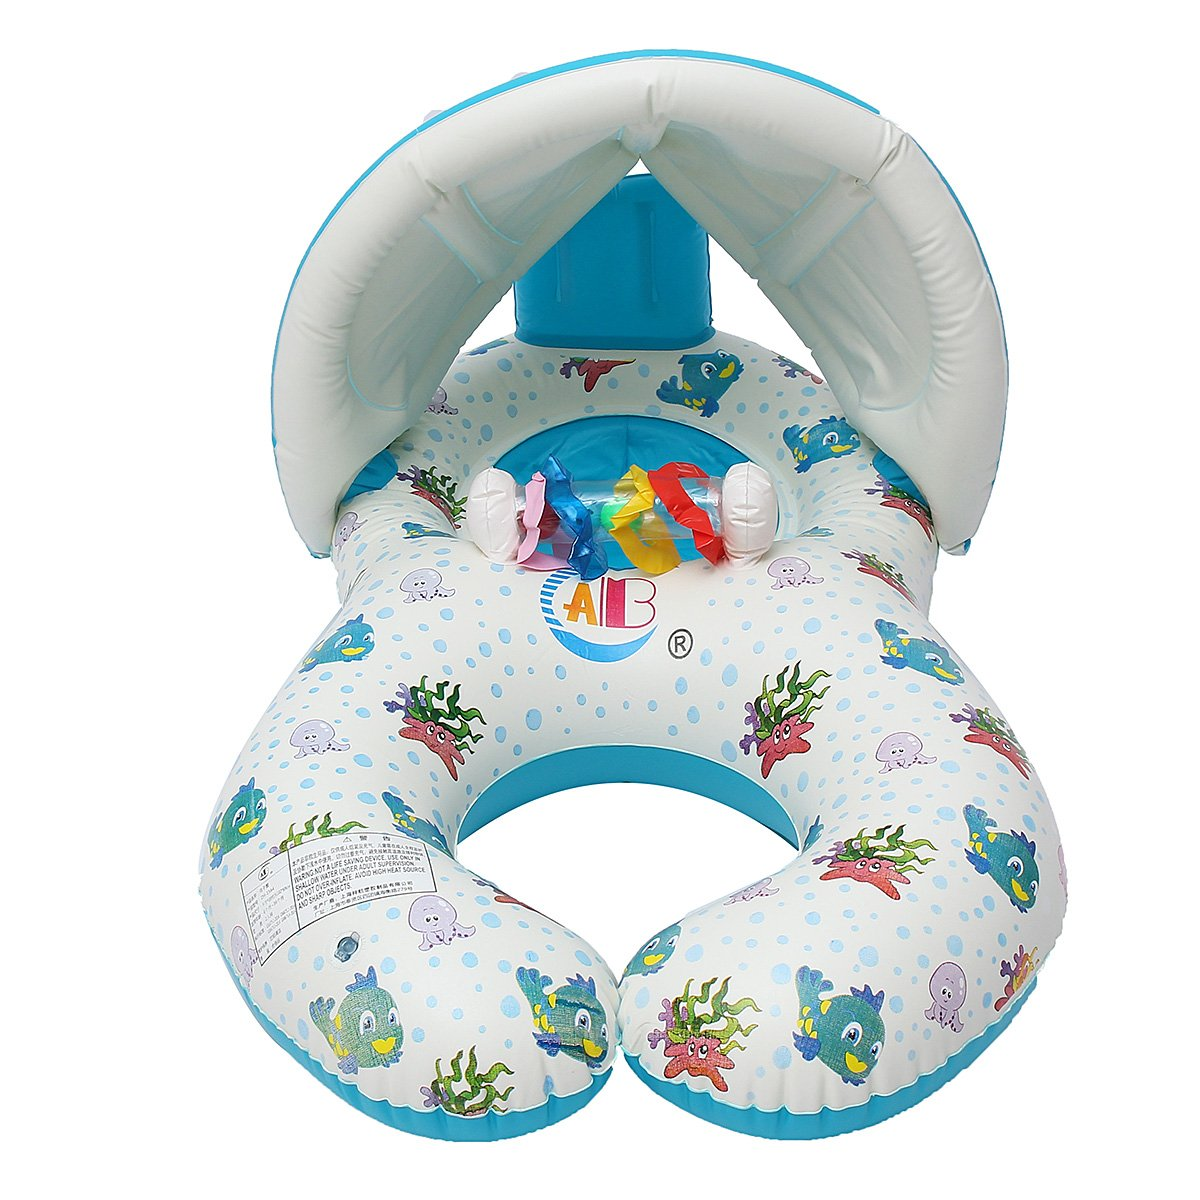 Water Sports WD Inflatable Mother Baby Swimming Ring Swim Pool Water Seat Float with Canopy Sunshade by Wincom Dishman (Image #5)